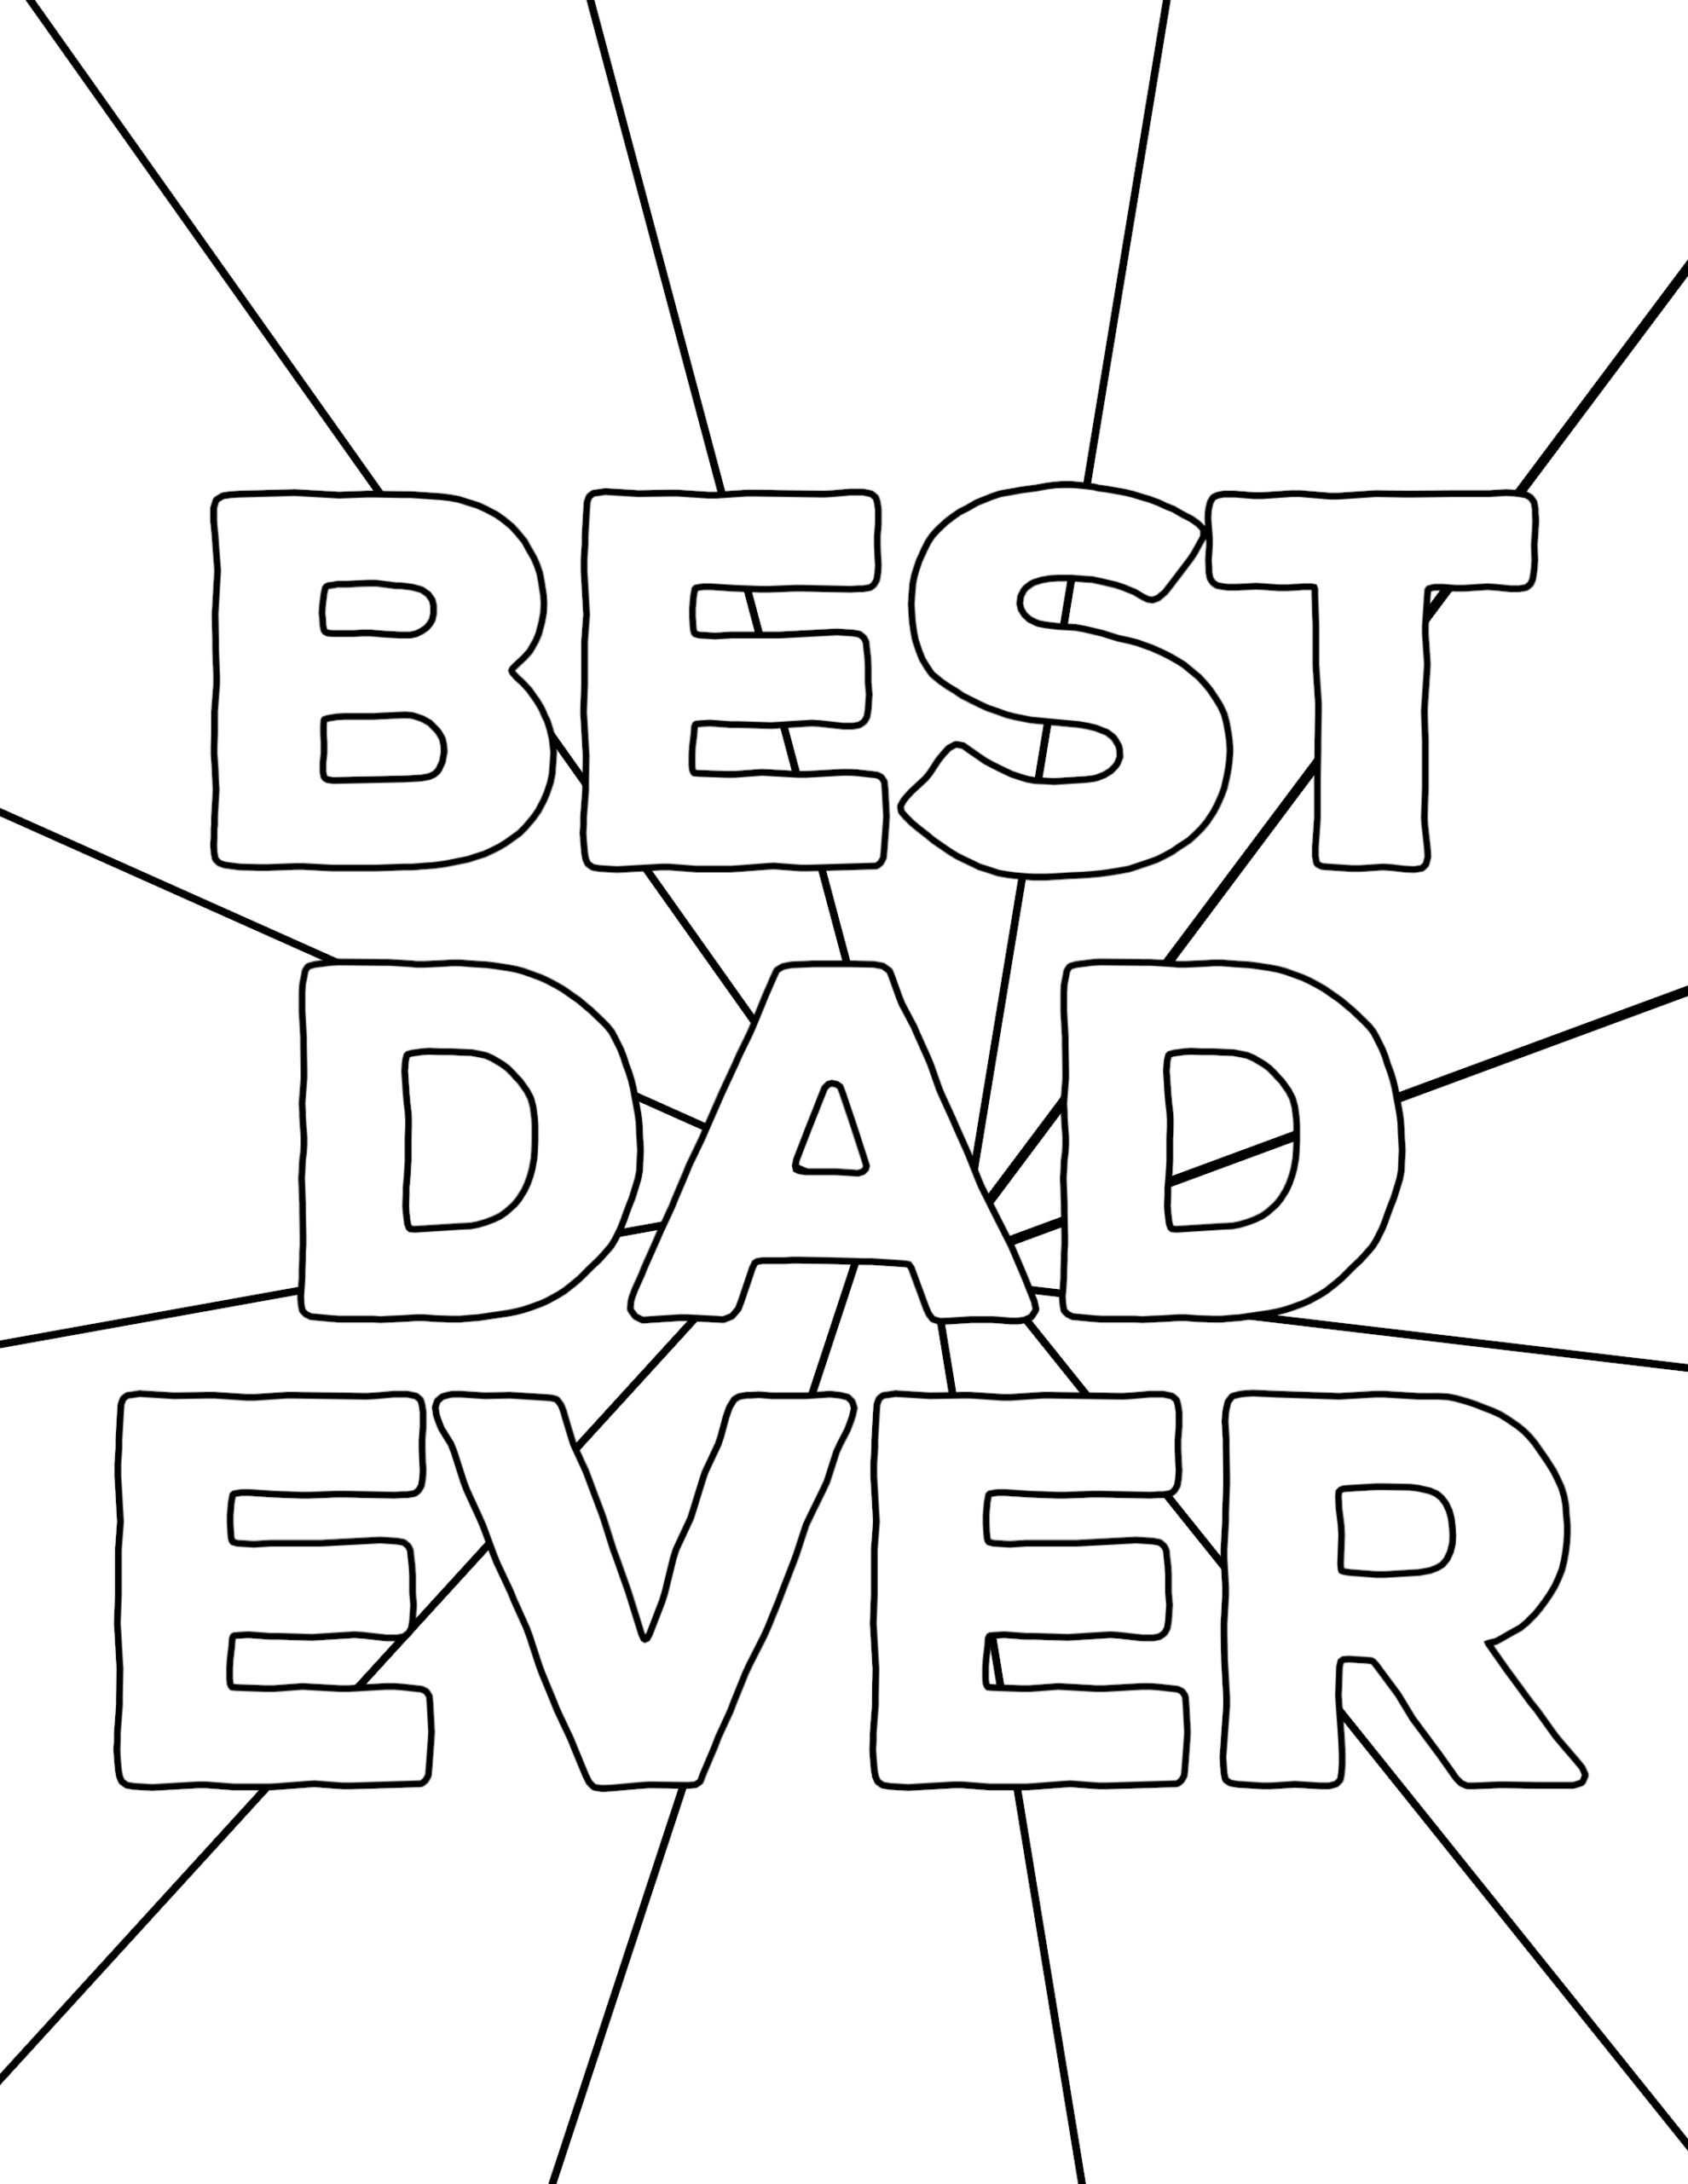 Happy Father's Day Coloring Pages Free Printables - Paper Trail Design - Free Printable Happy Fathers Day Grandpa Cards